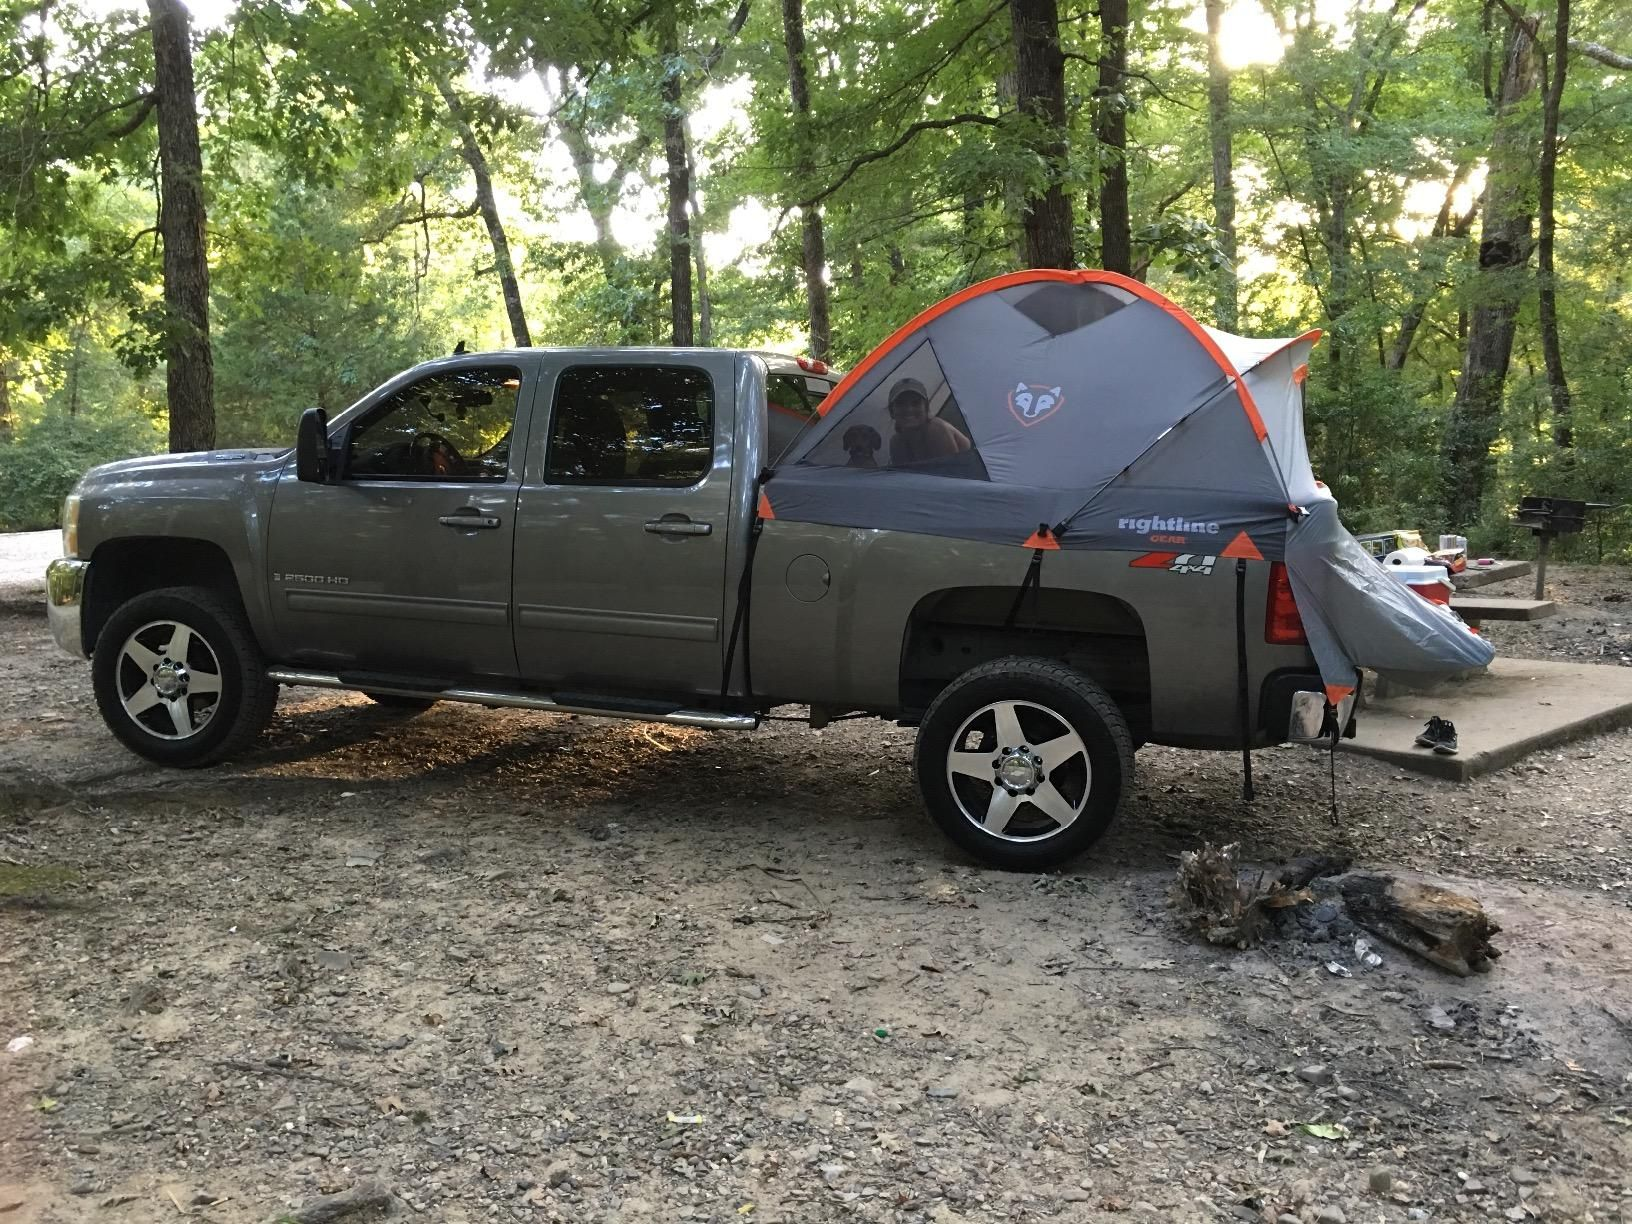 Pin on Truck & Jeep Camping